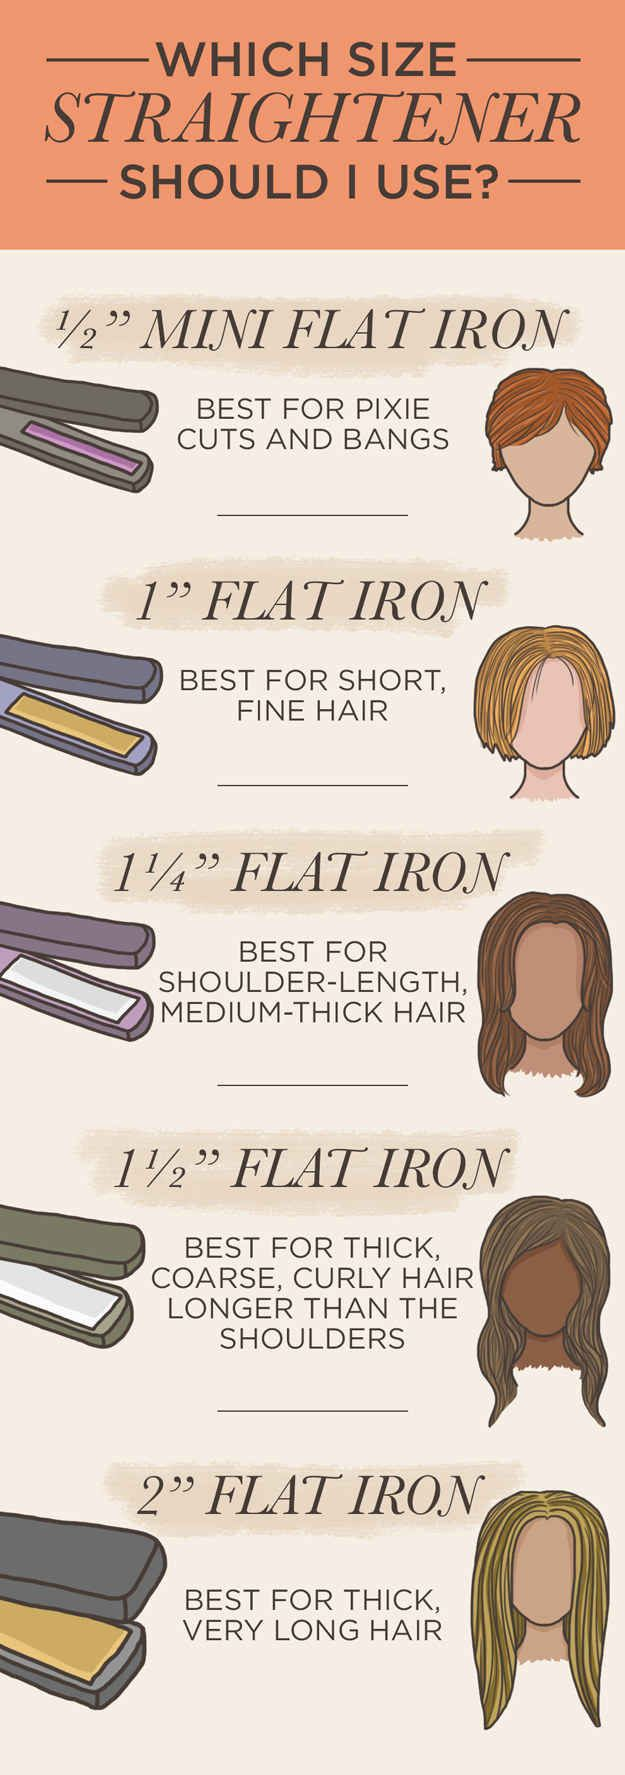 First, figure out which size straightener is best for your hair type.